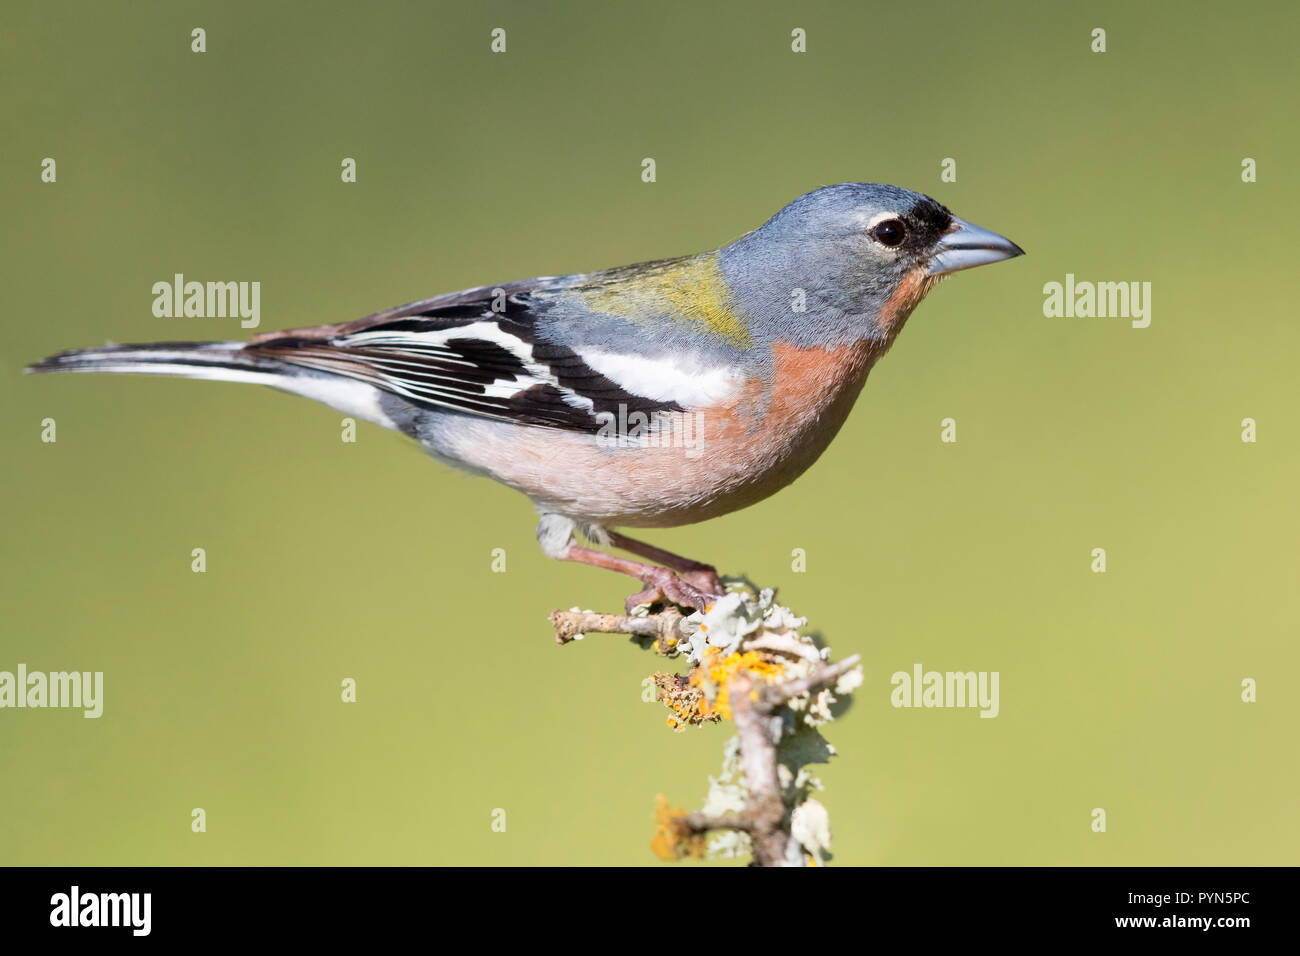 Common Chaffinch (Fringilla coelebs africana), side view of an adult male standing on a branch in Morocco - Stock Image